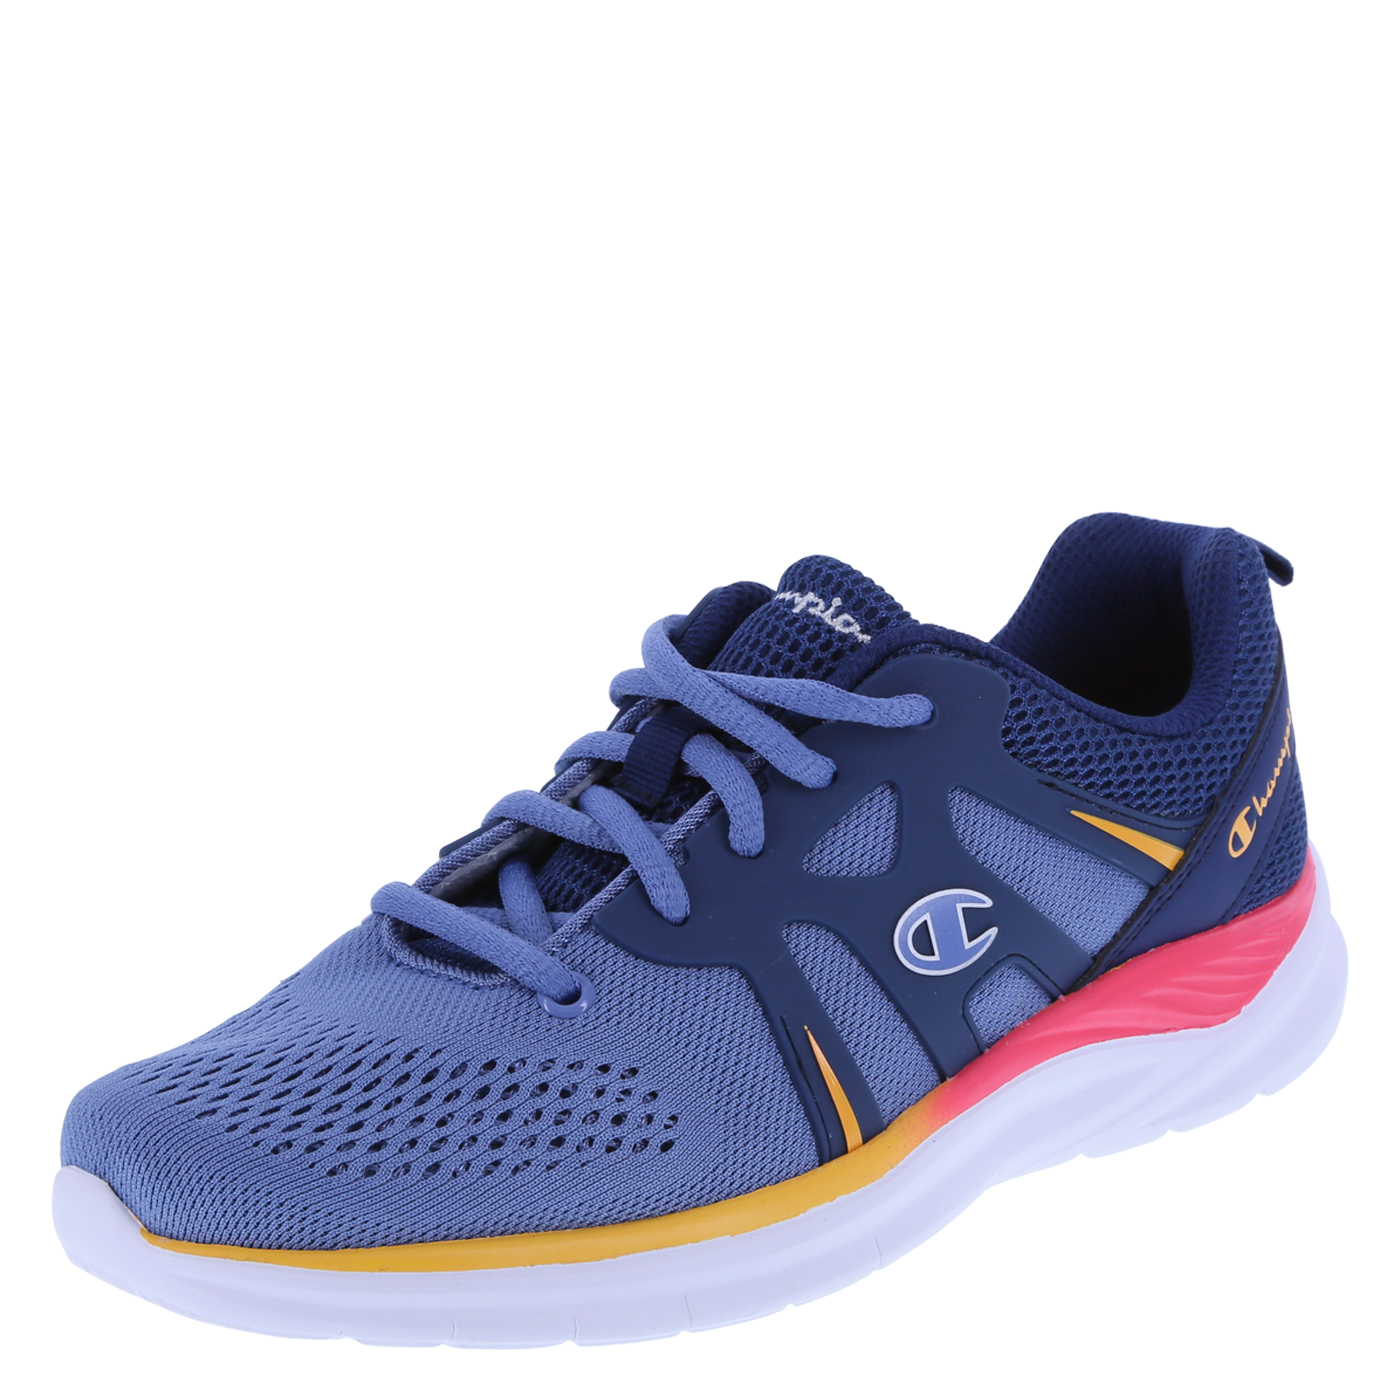 Champion EXHILARATE RUNNER Running Shoes